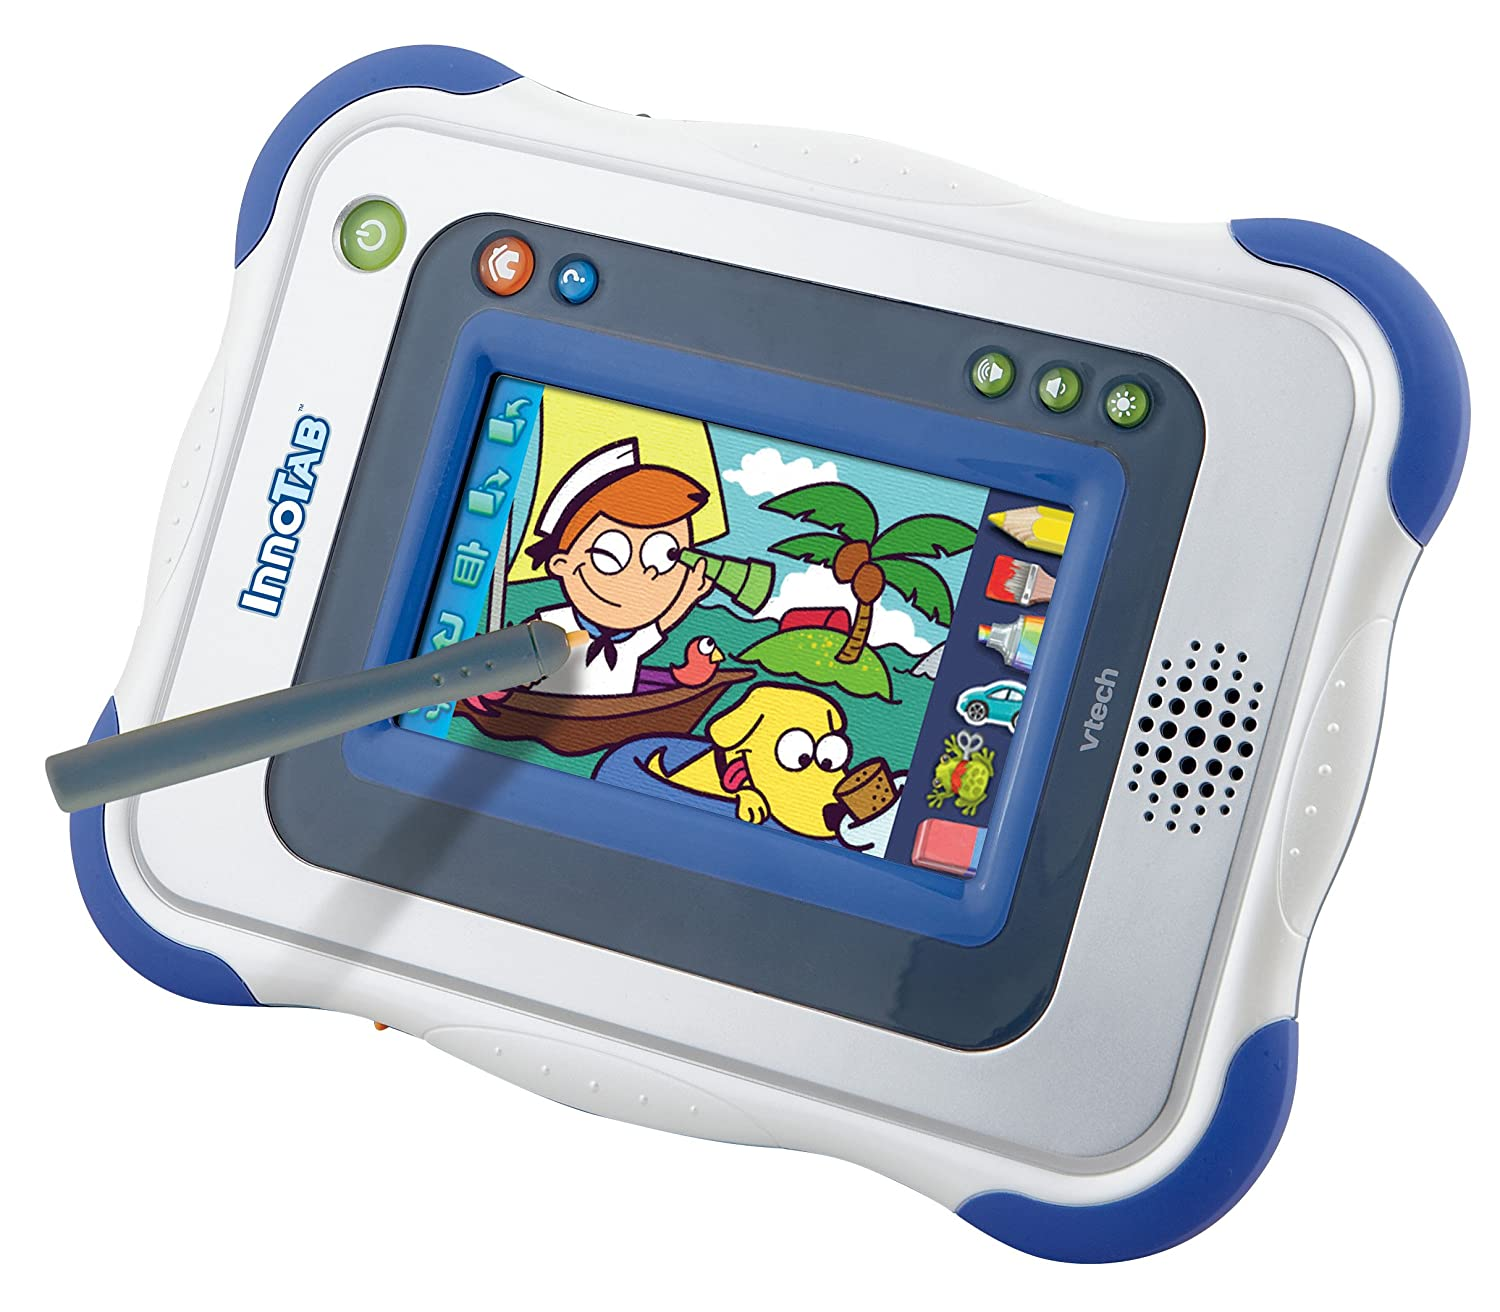 Amazon VTech InnoTab 1 Kids Tablet Blue Toys & Games